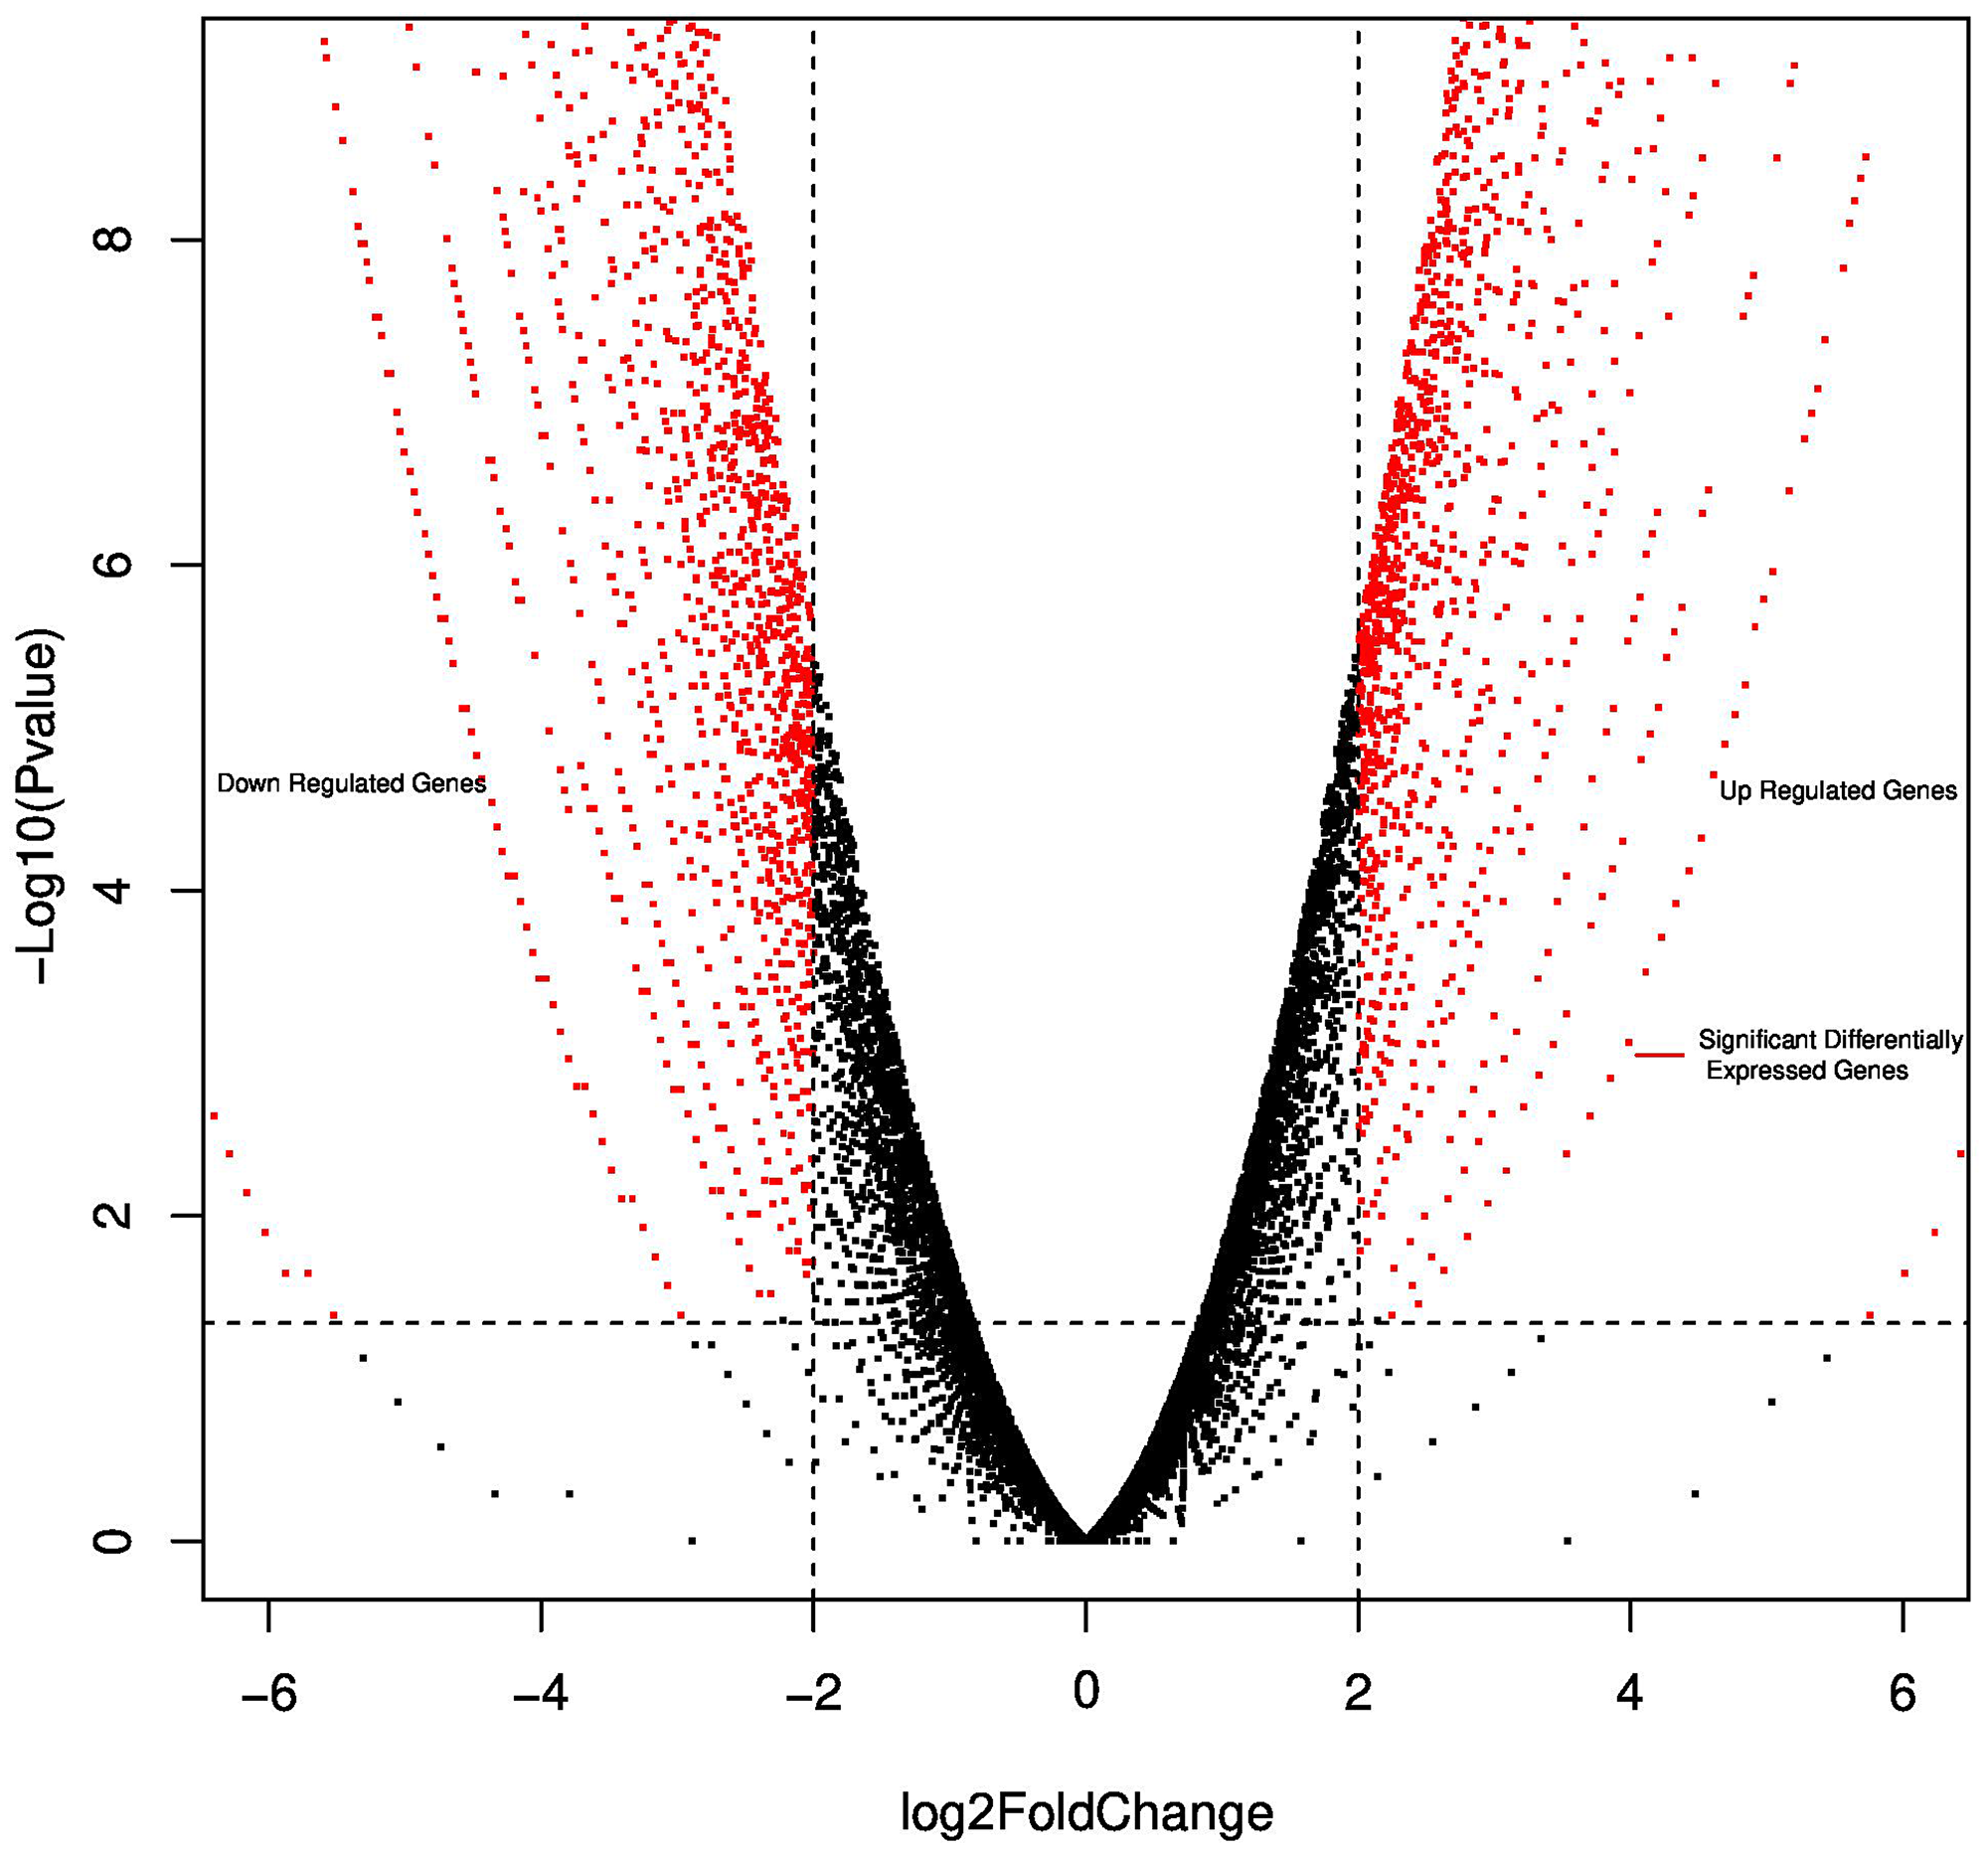 Volcano plot reporting P values against fold changes.